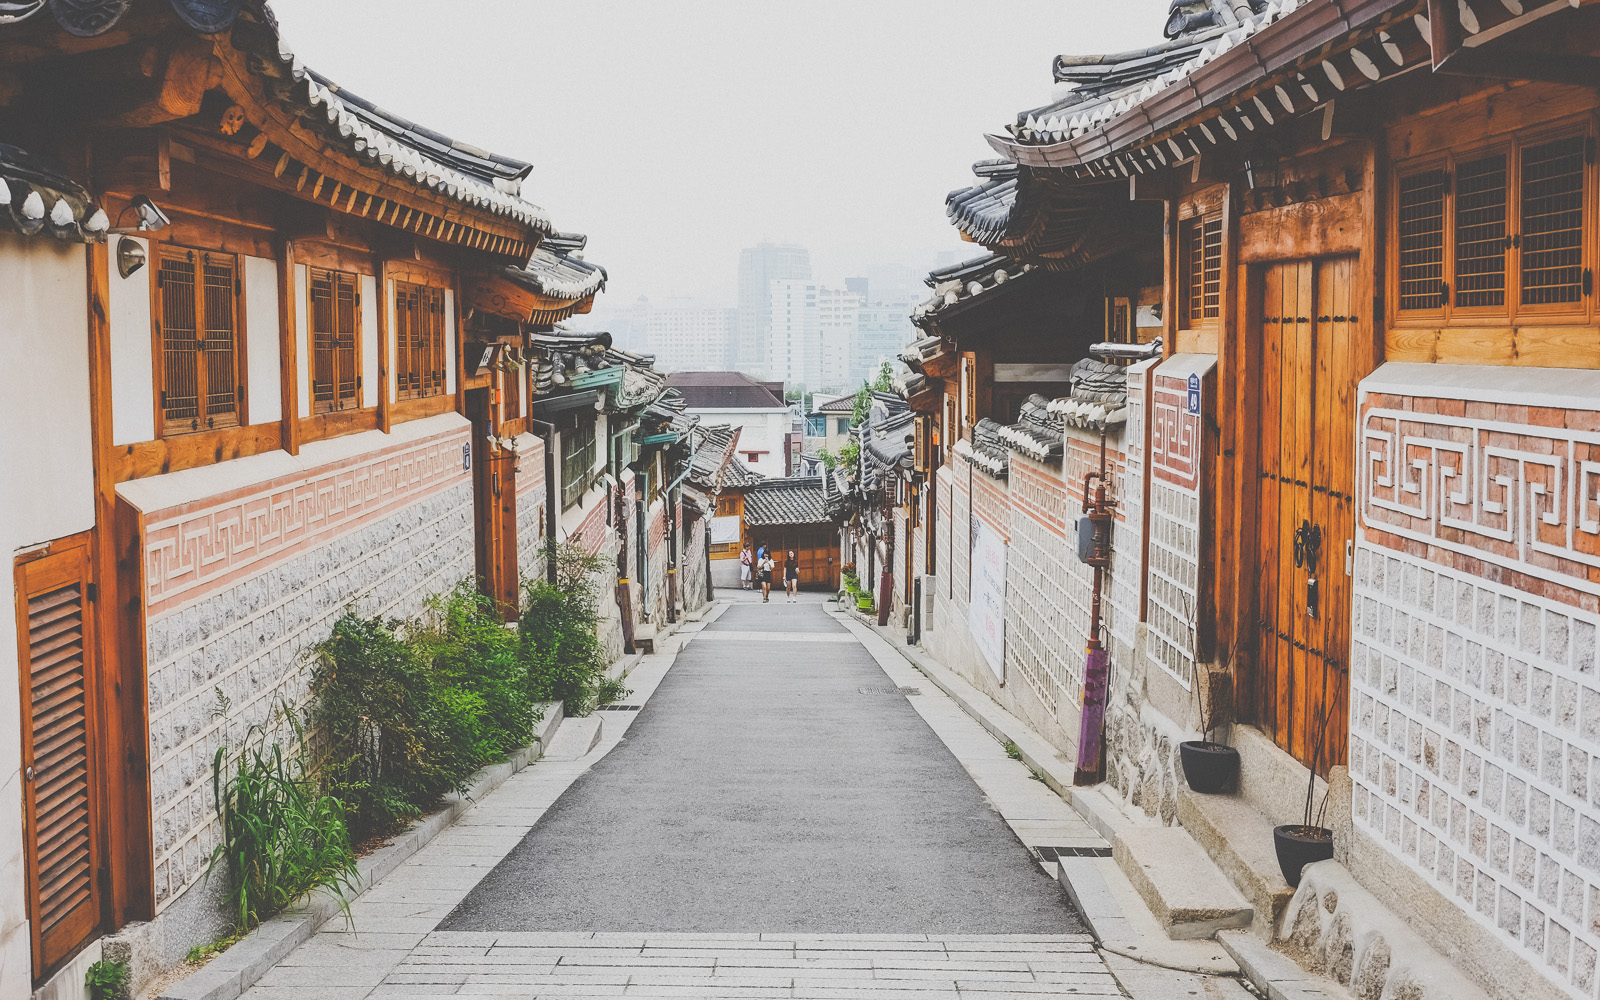 Bukchon Hanok Village and hazy Seoul